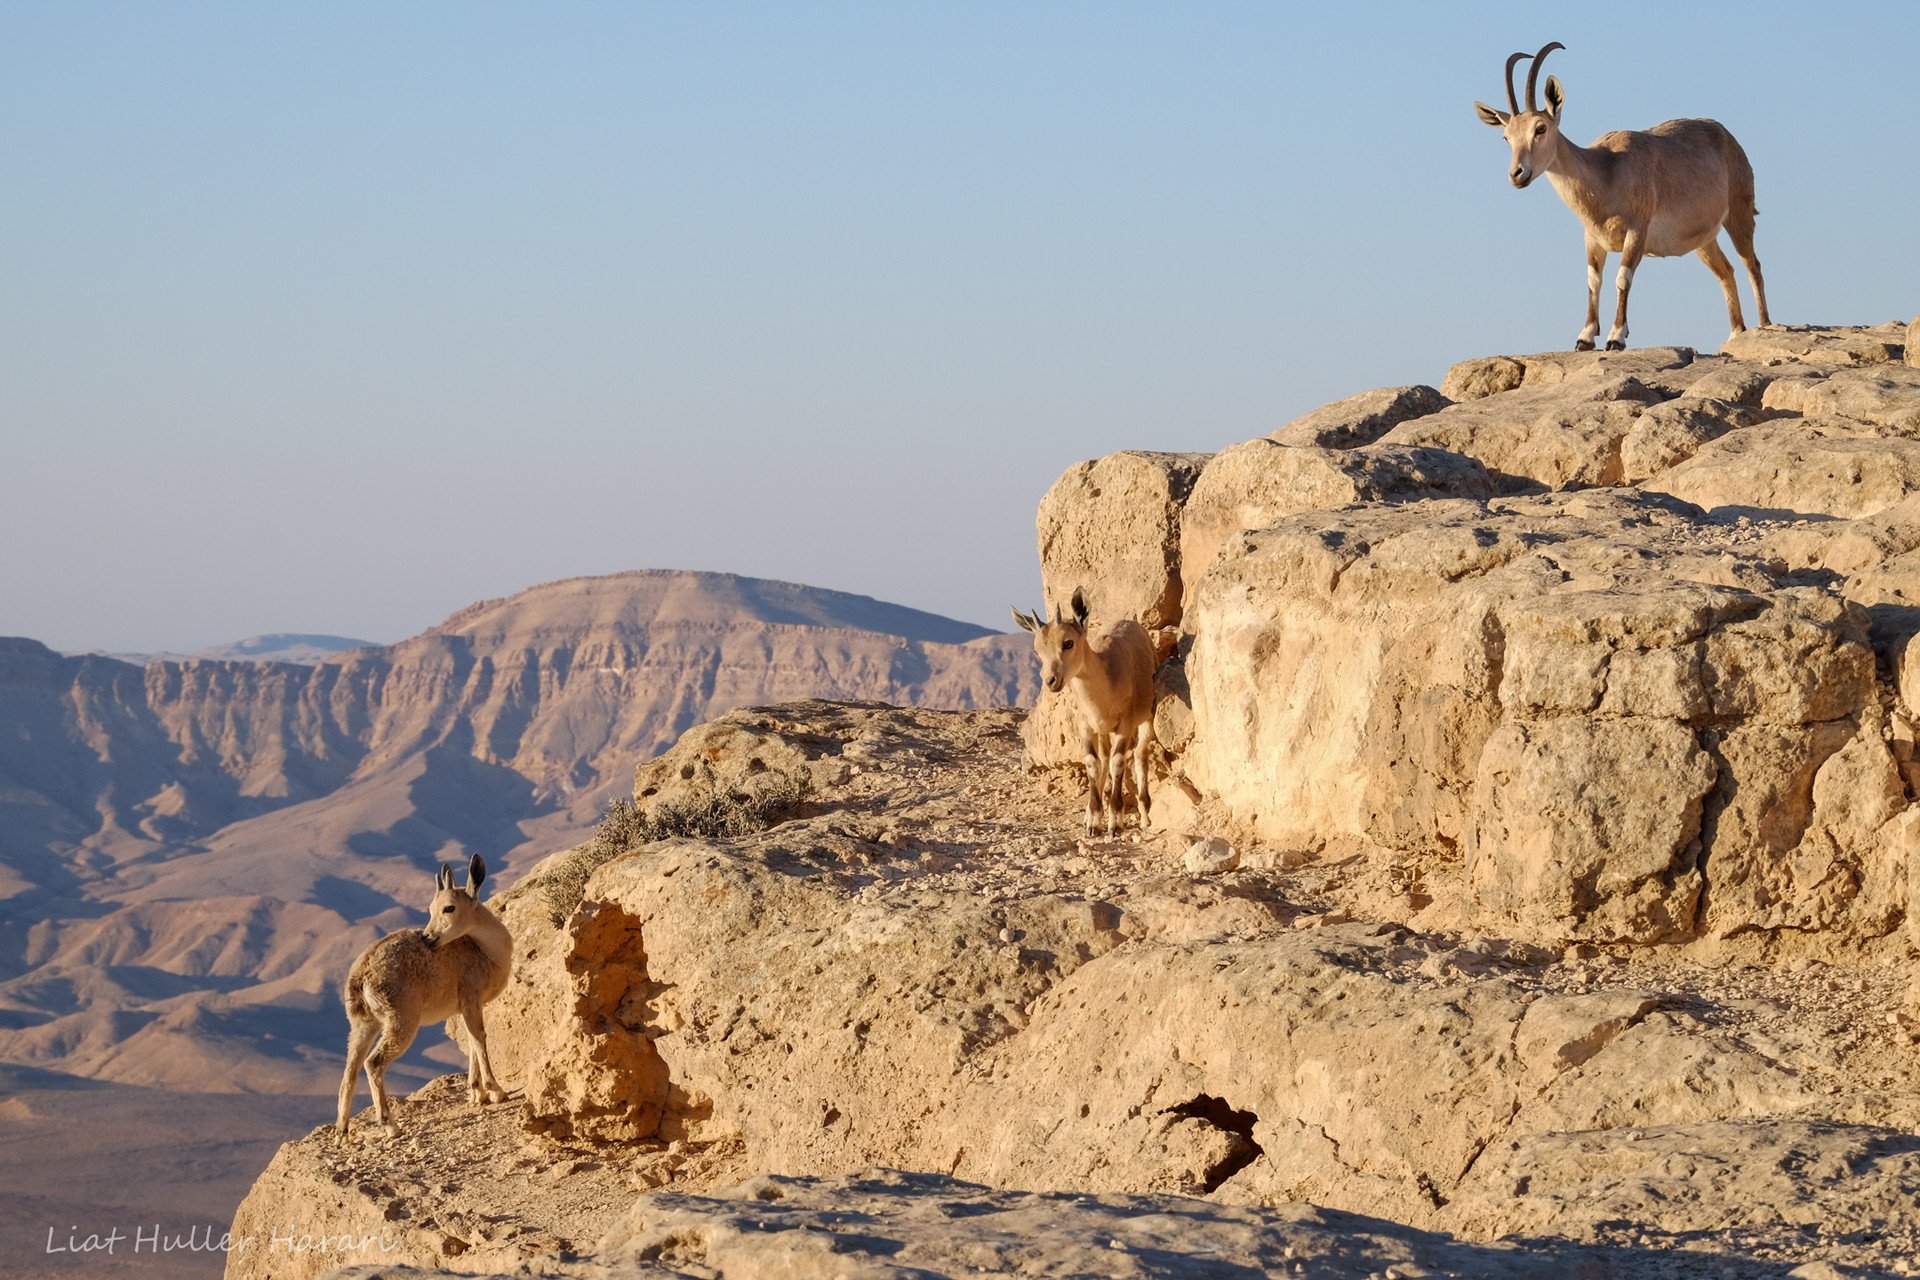 Capra mother and children, Ramon crater Israel